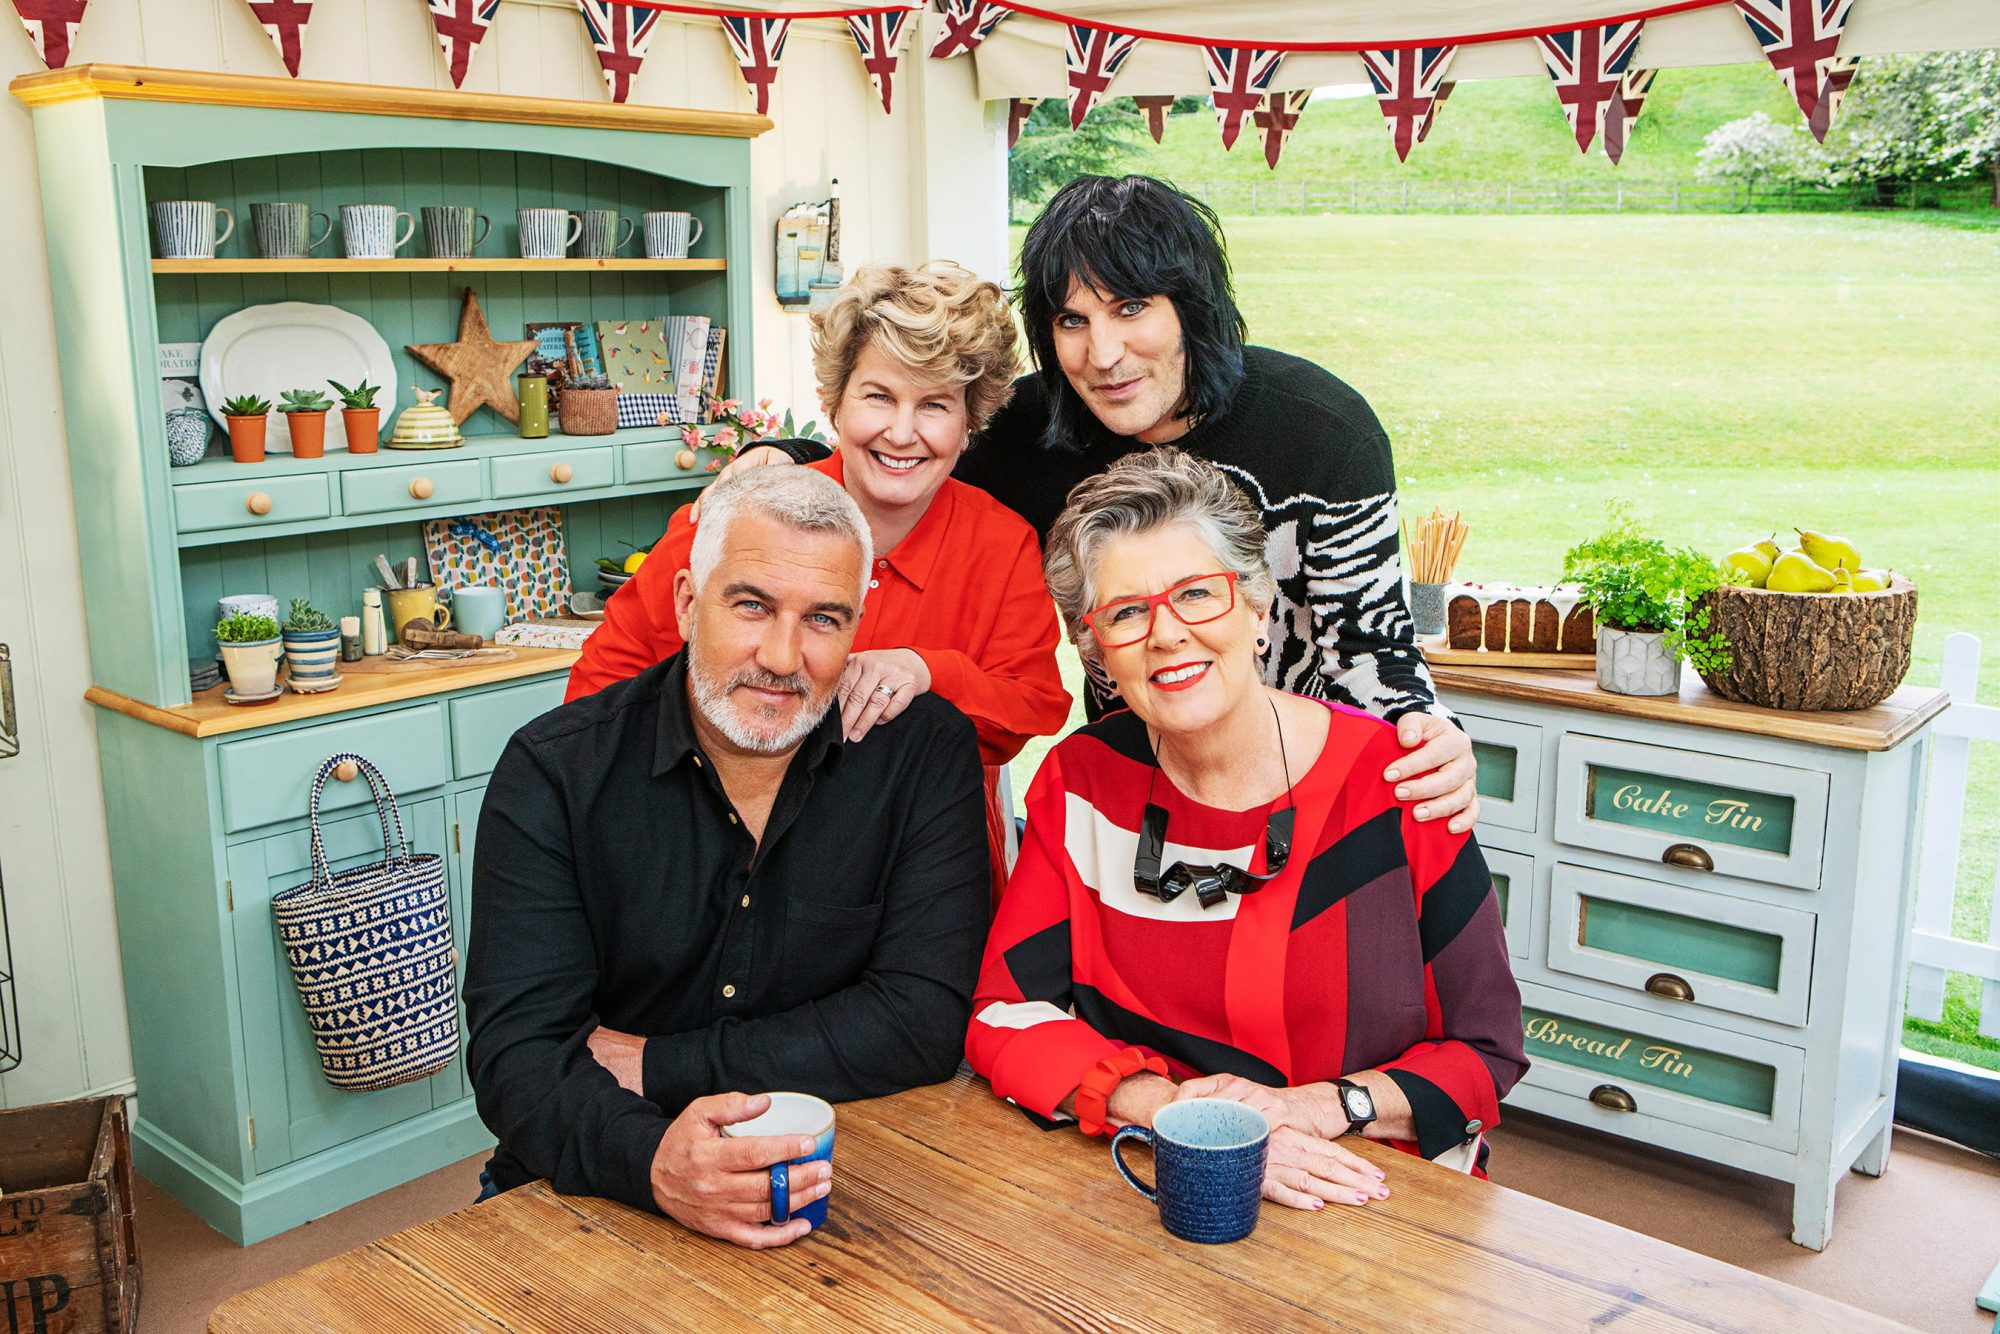 The Great British Bake Off Paul, Sandi, Noel and Prue.